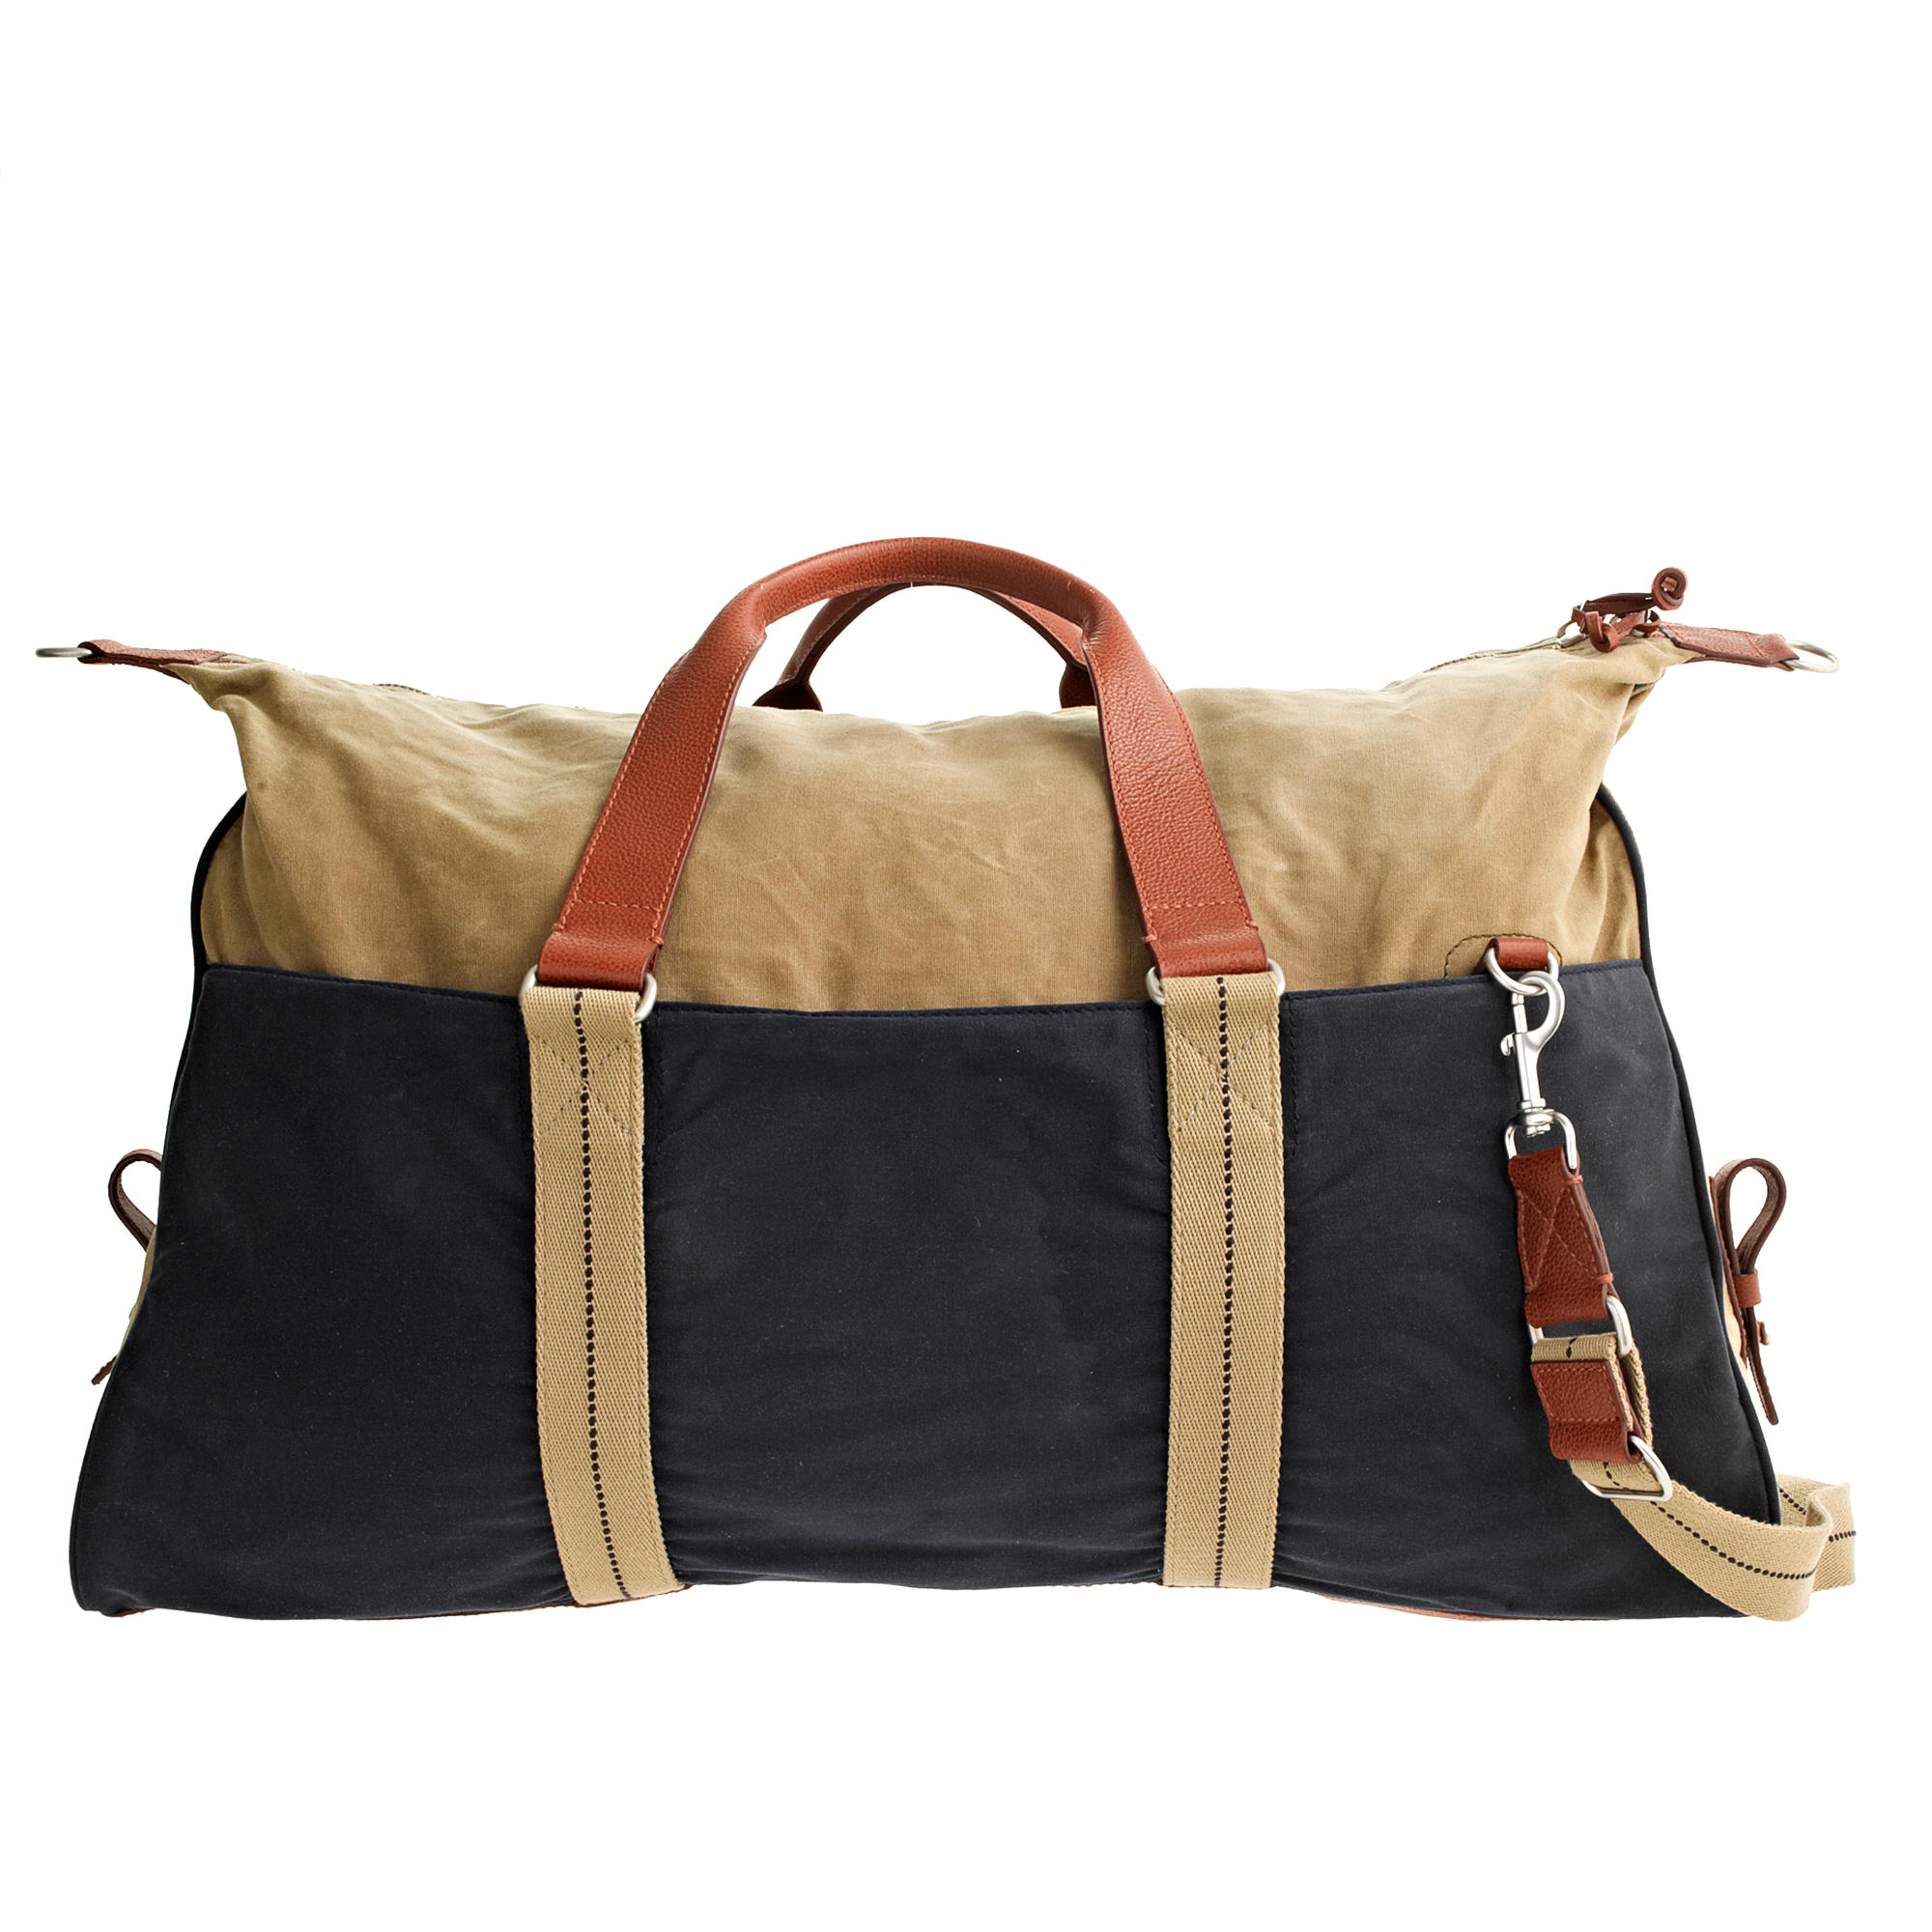 J.Crew Abingdon Weekender Bag In Two-tone in Natural for Men - Lyst 95310add64a39